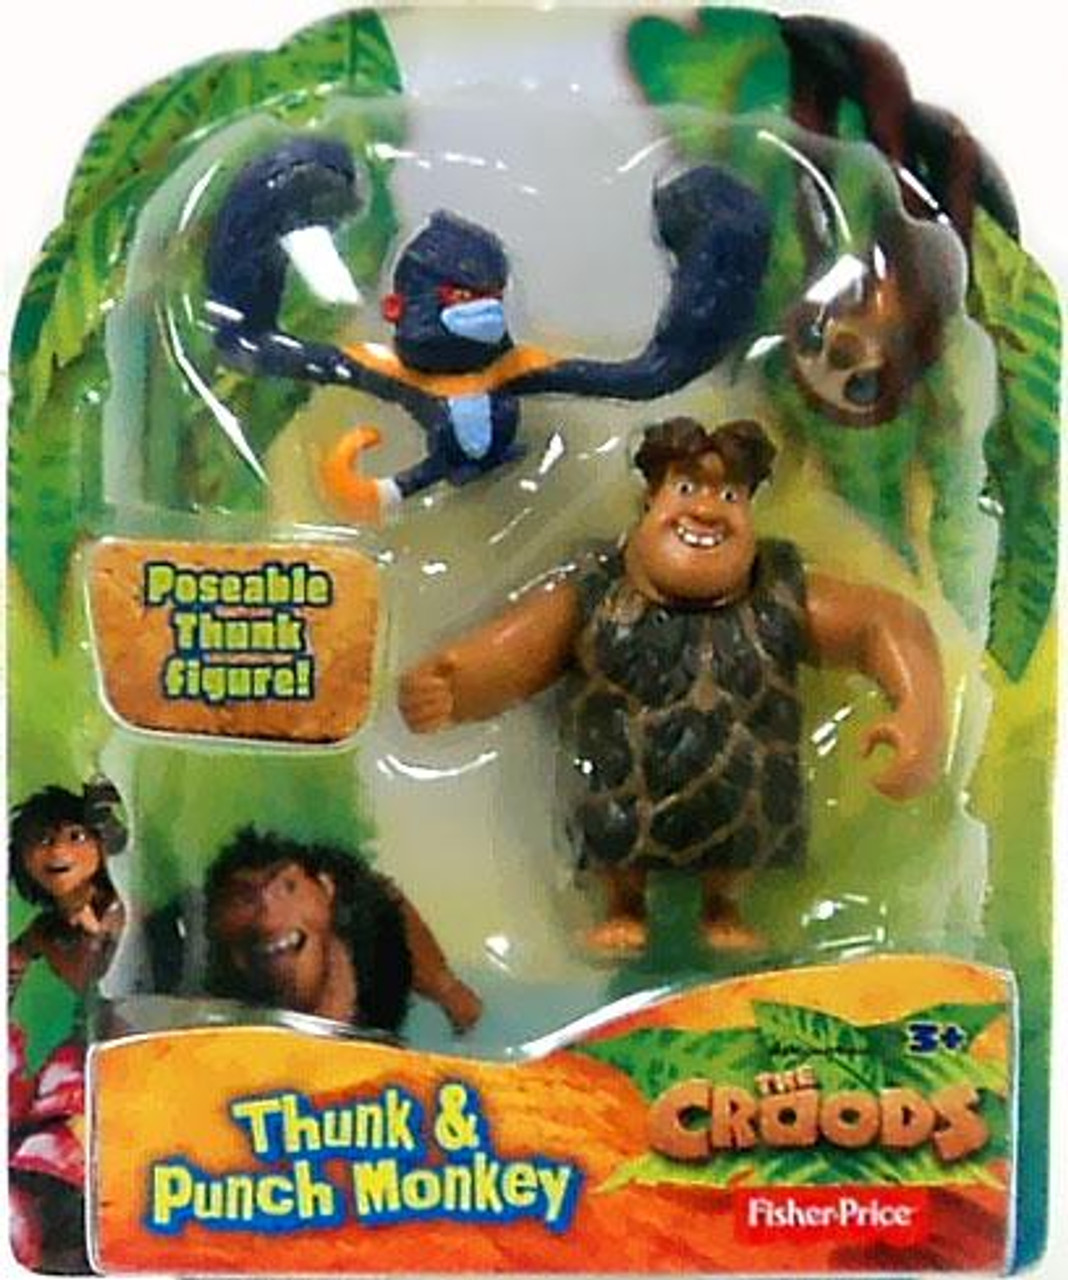 Fisher Price The Croods Thunk & Punch Monkey 3-Inch Figure 2-Pack